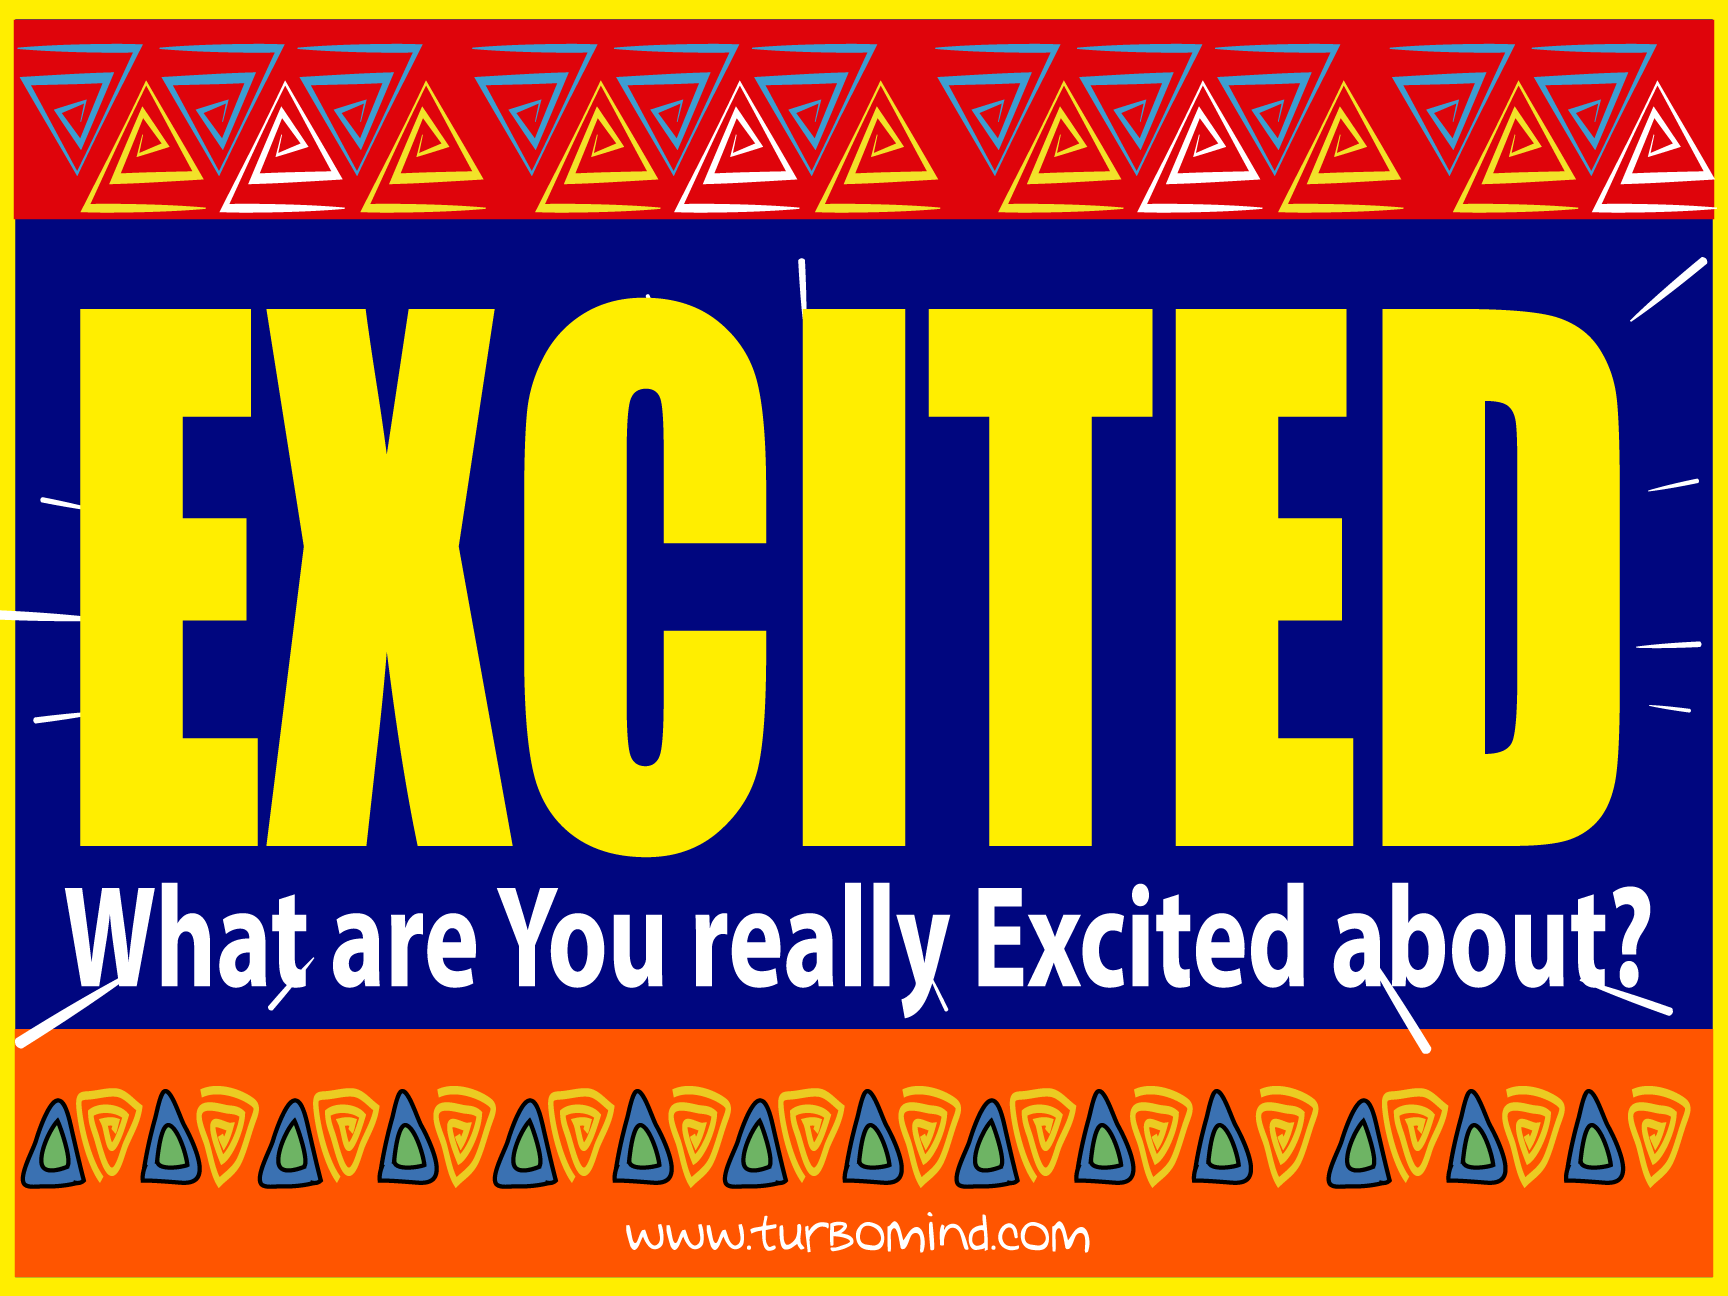 WHAT ARE YOU REALLY EXCITED ABOUT?